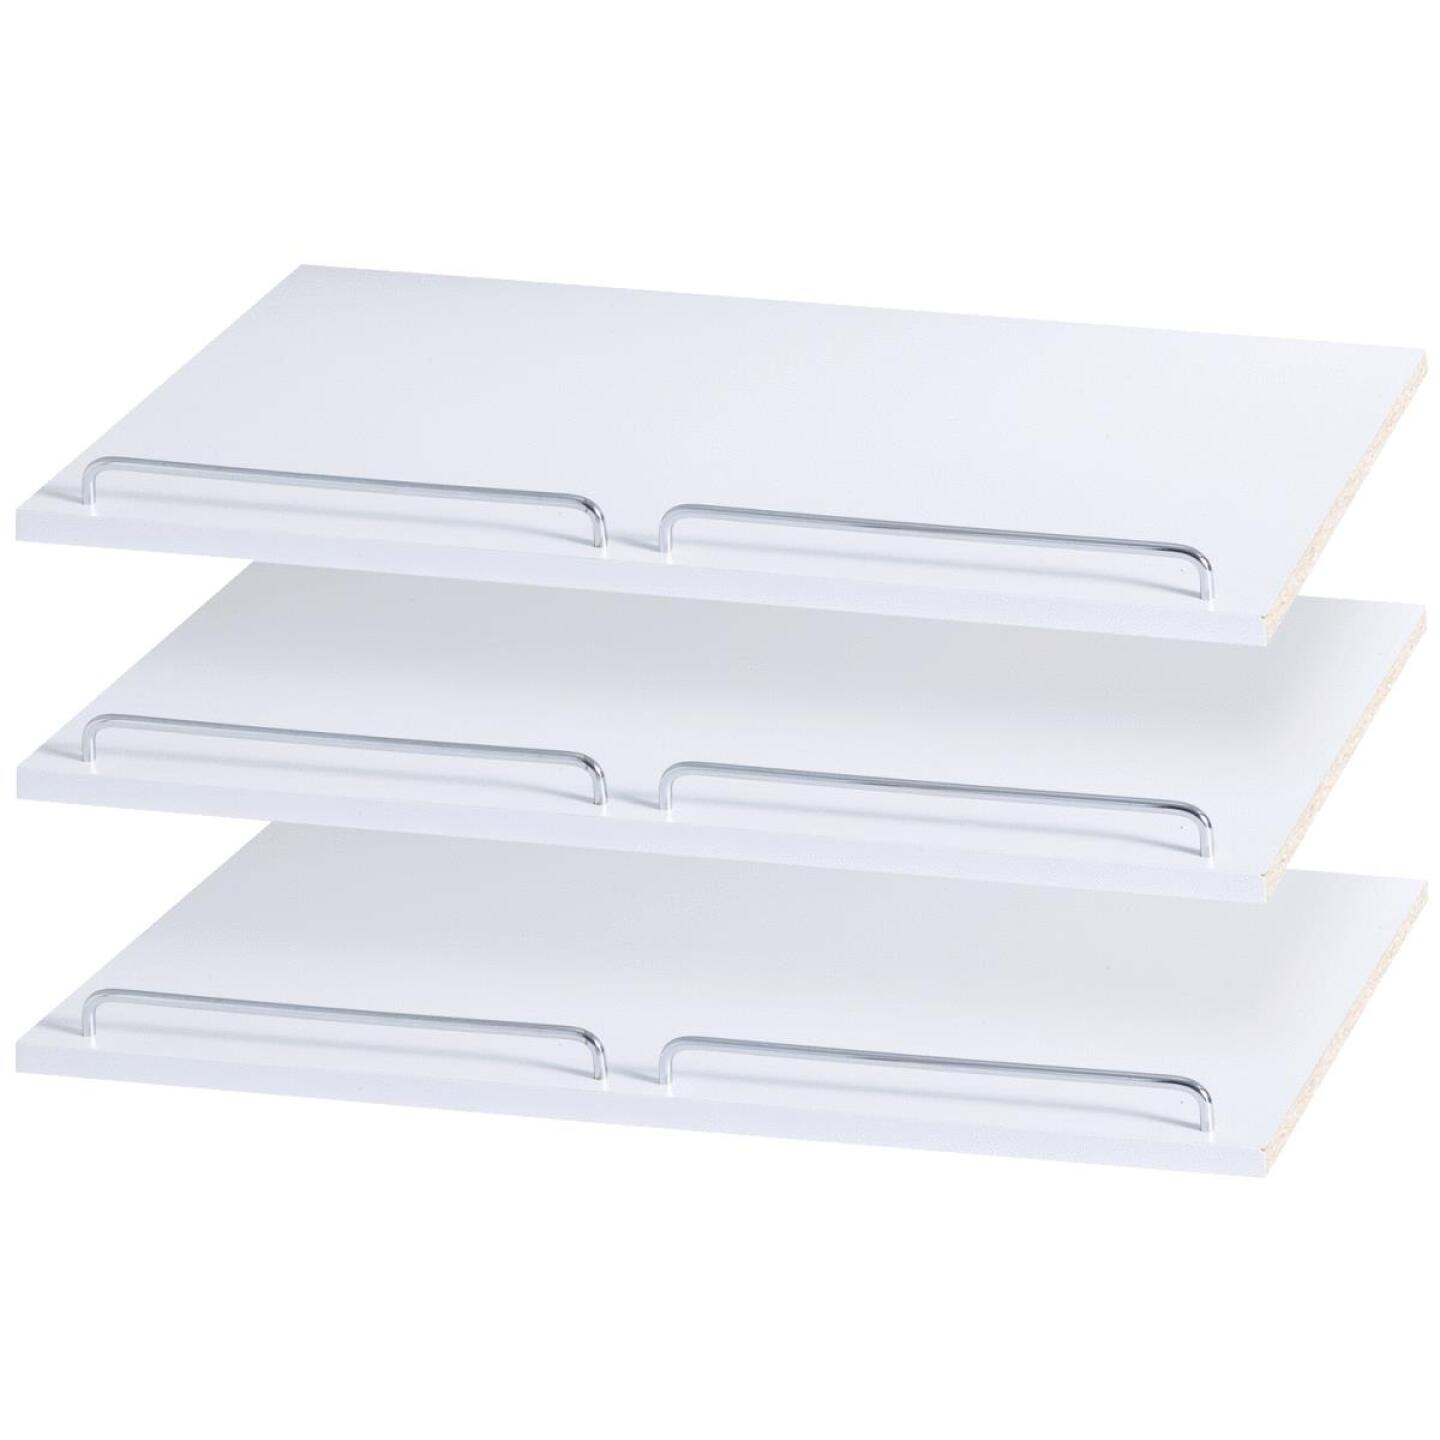 Easy Track 2 Ft. W. x 14 In. D. Laminated Shoe Shelf, White (3-Pack) Image 2